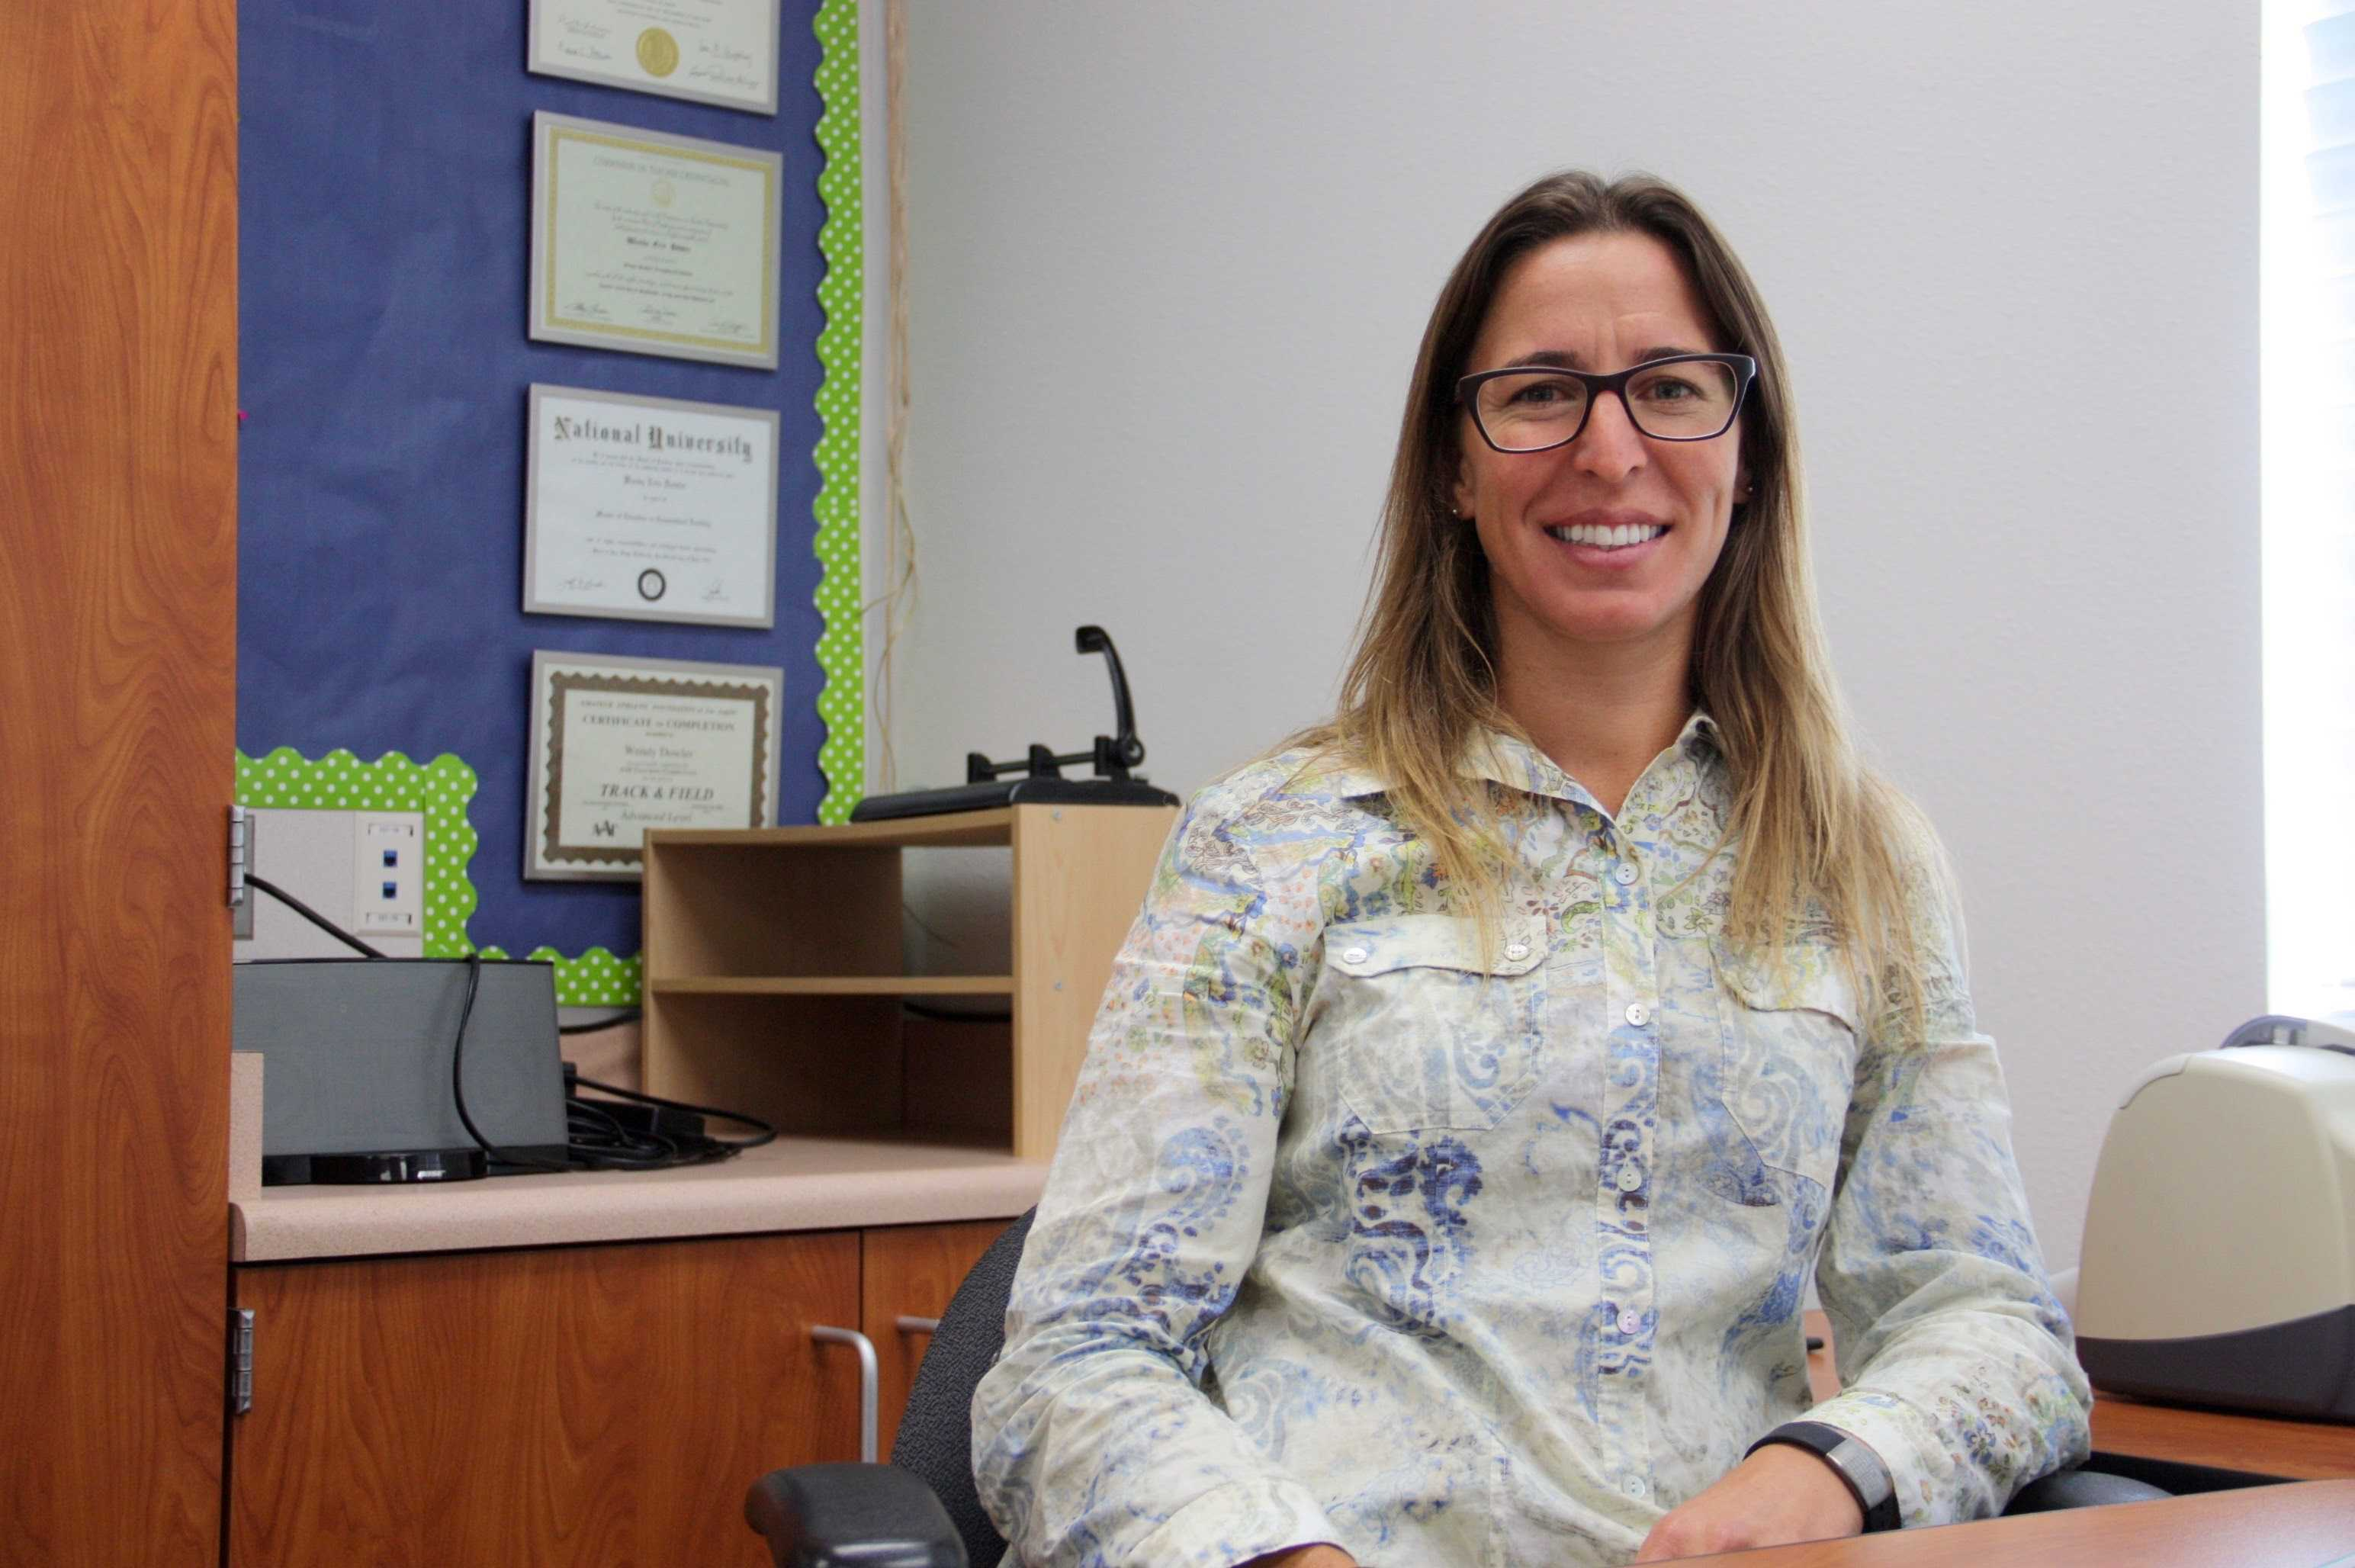 New English teacher Schmidt in her Foothill classroom. Credit: Abigail Massar / The Foothill Dragon Press